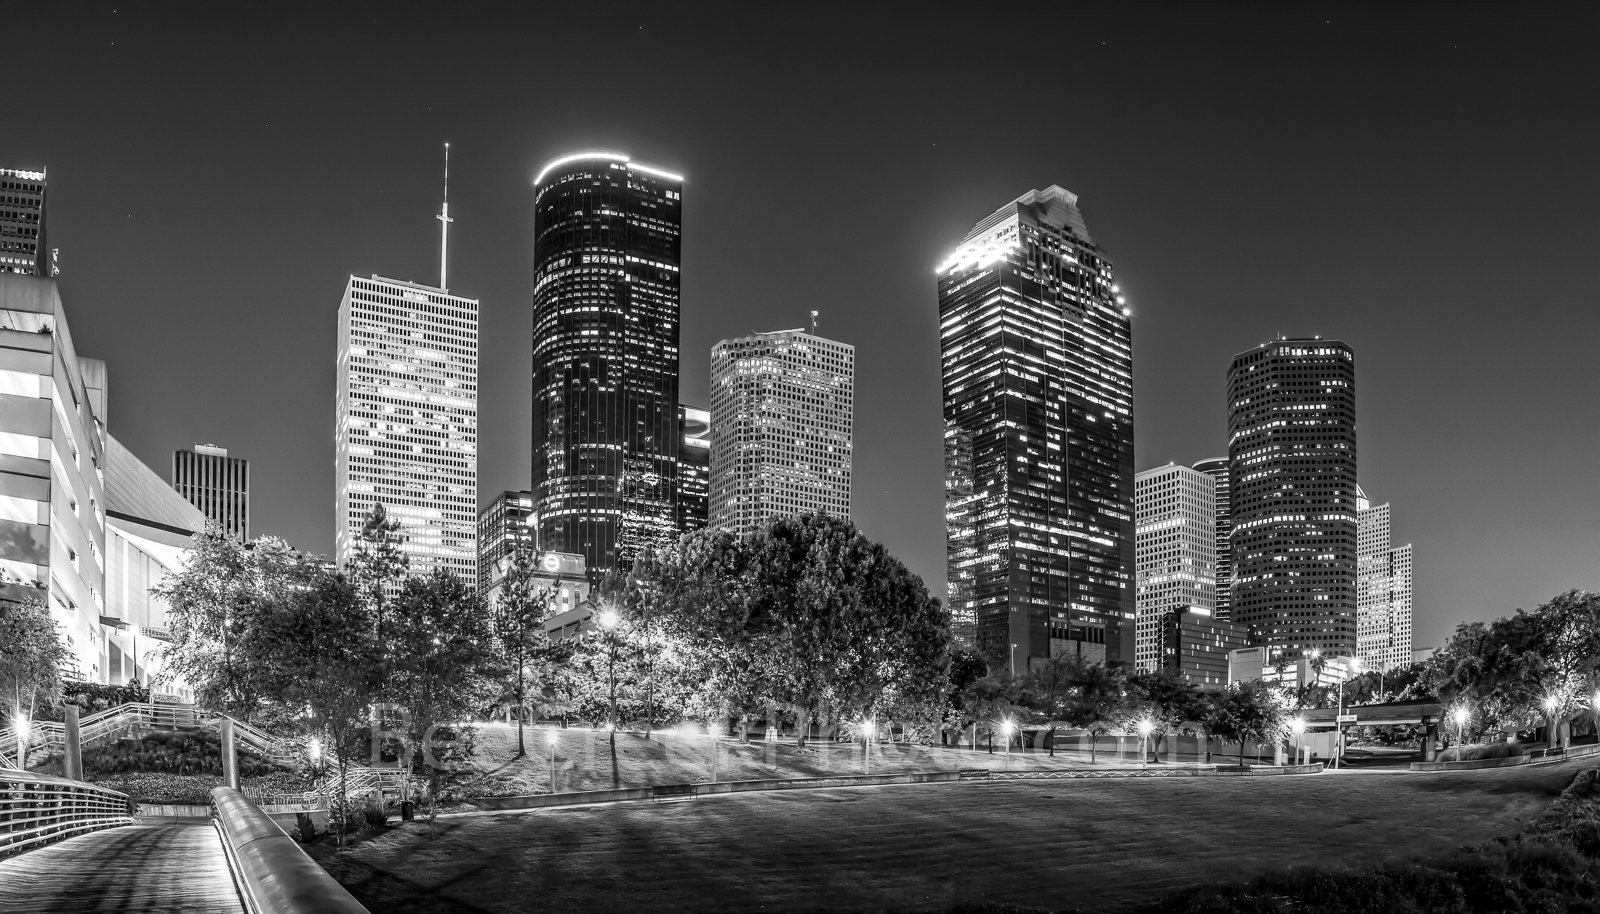 Houston, bagby to sabine, promenade, bridge, downtown, skyline, BW, black and white, dusk, pedestrian bridges, america, cityscapes, buffalo bayou, water, reflections, stock bridge photos, stock bridge, photo